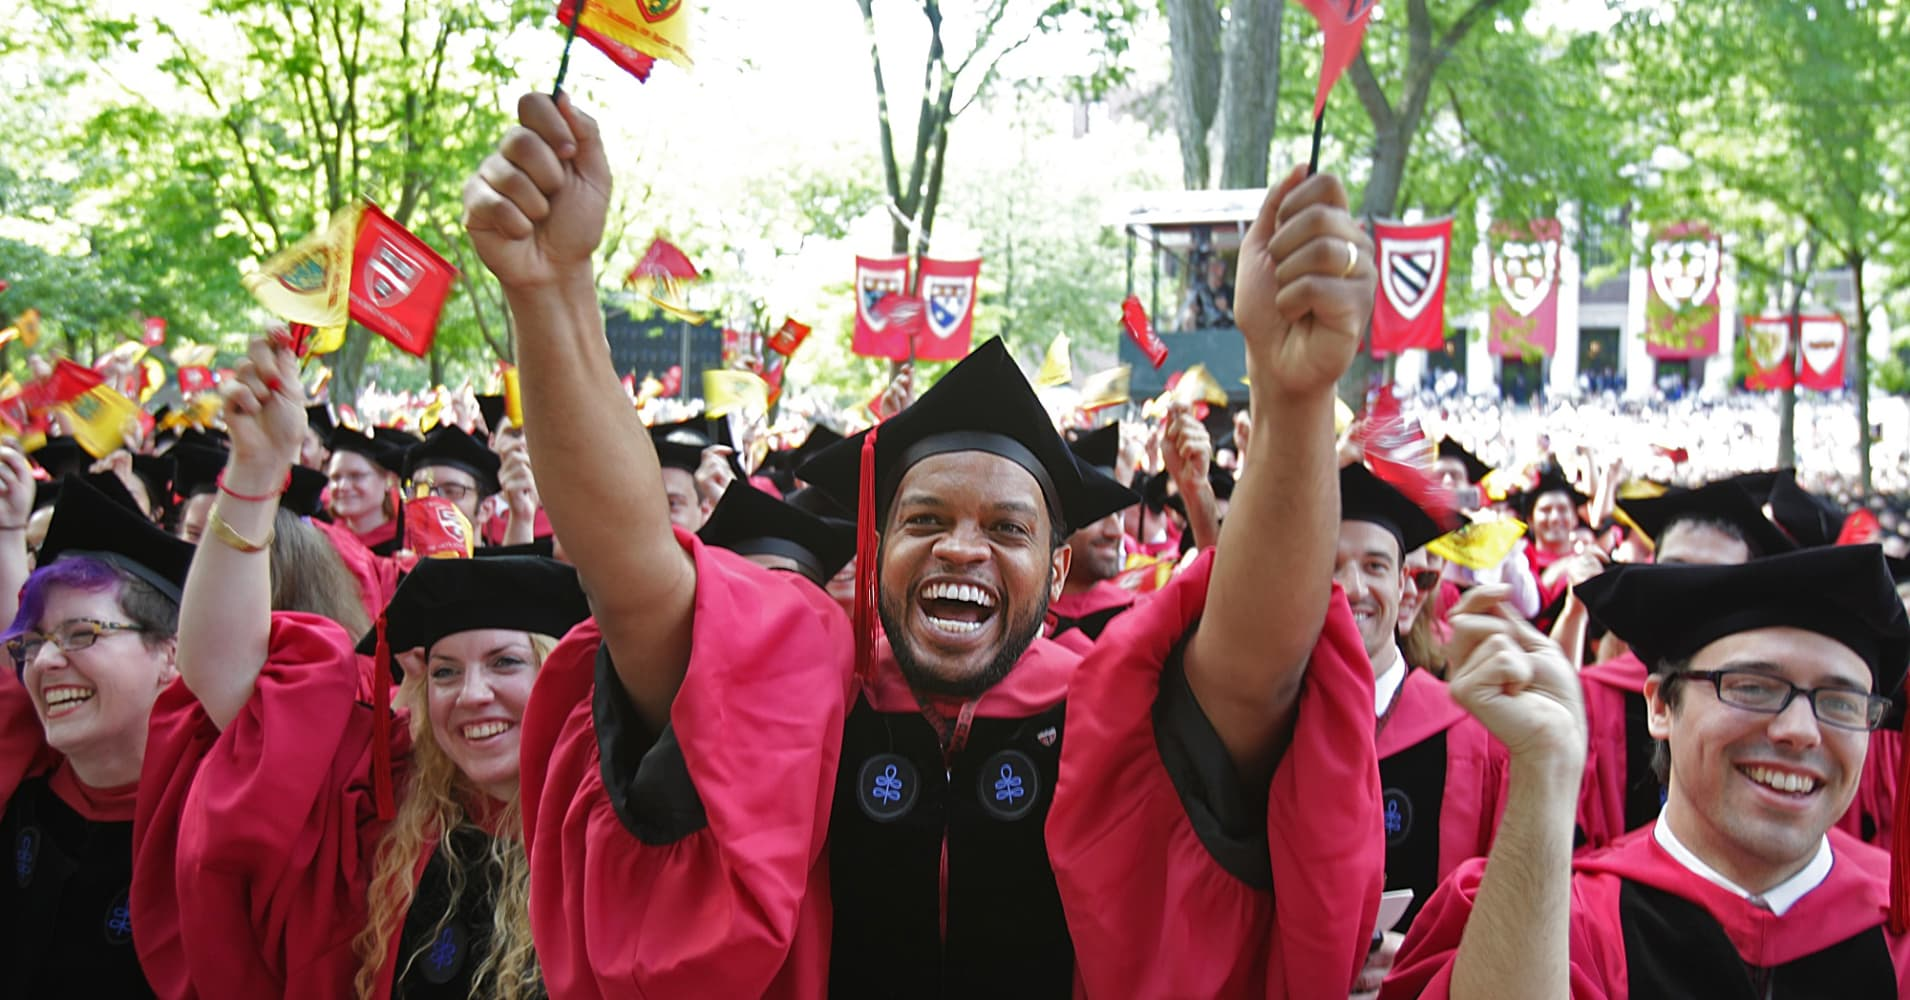 Students react as they prepare to receive their diplomas at commencement at Harvard University.